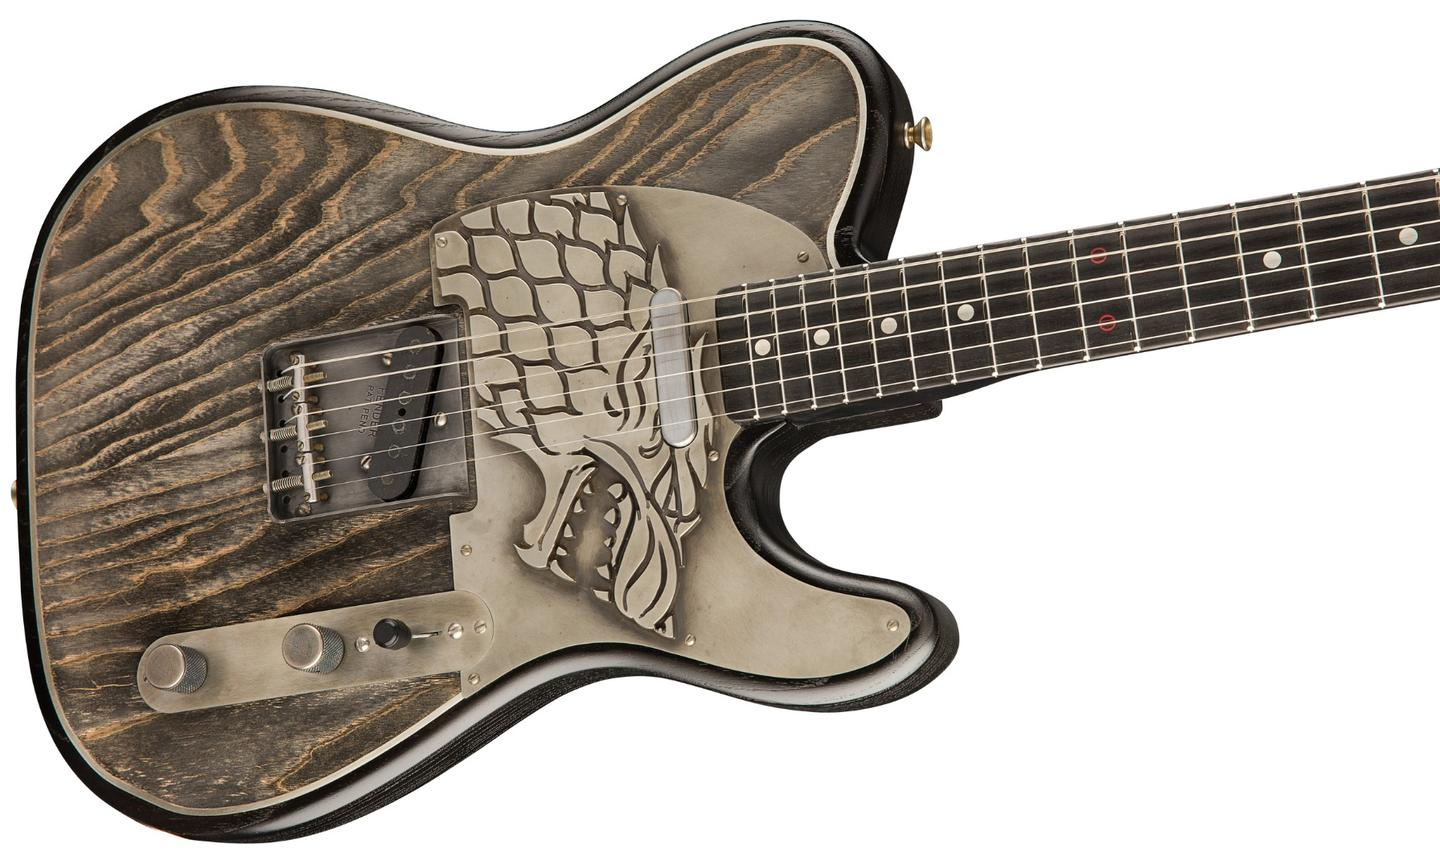 The Game of ThronesHouse Stark Telecaster features a Dire Wolf sigil embossed in nickel silver on the pickguard